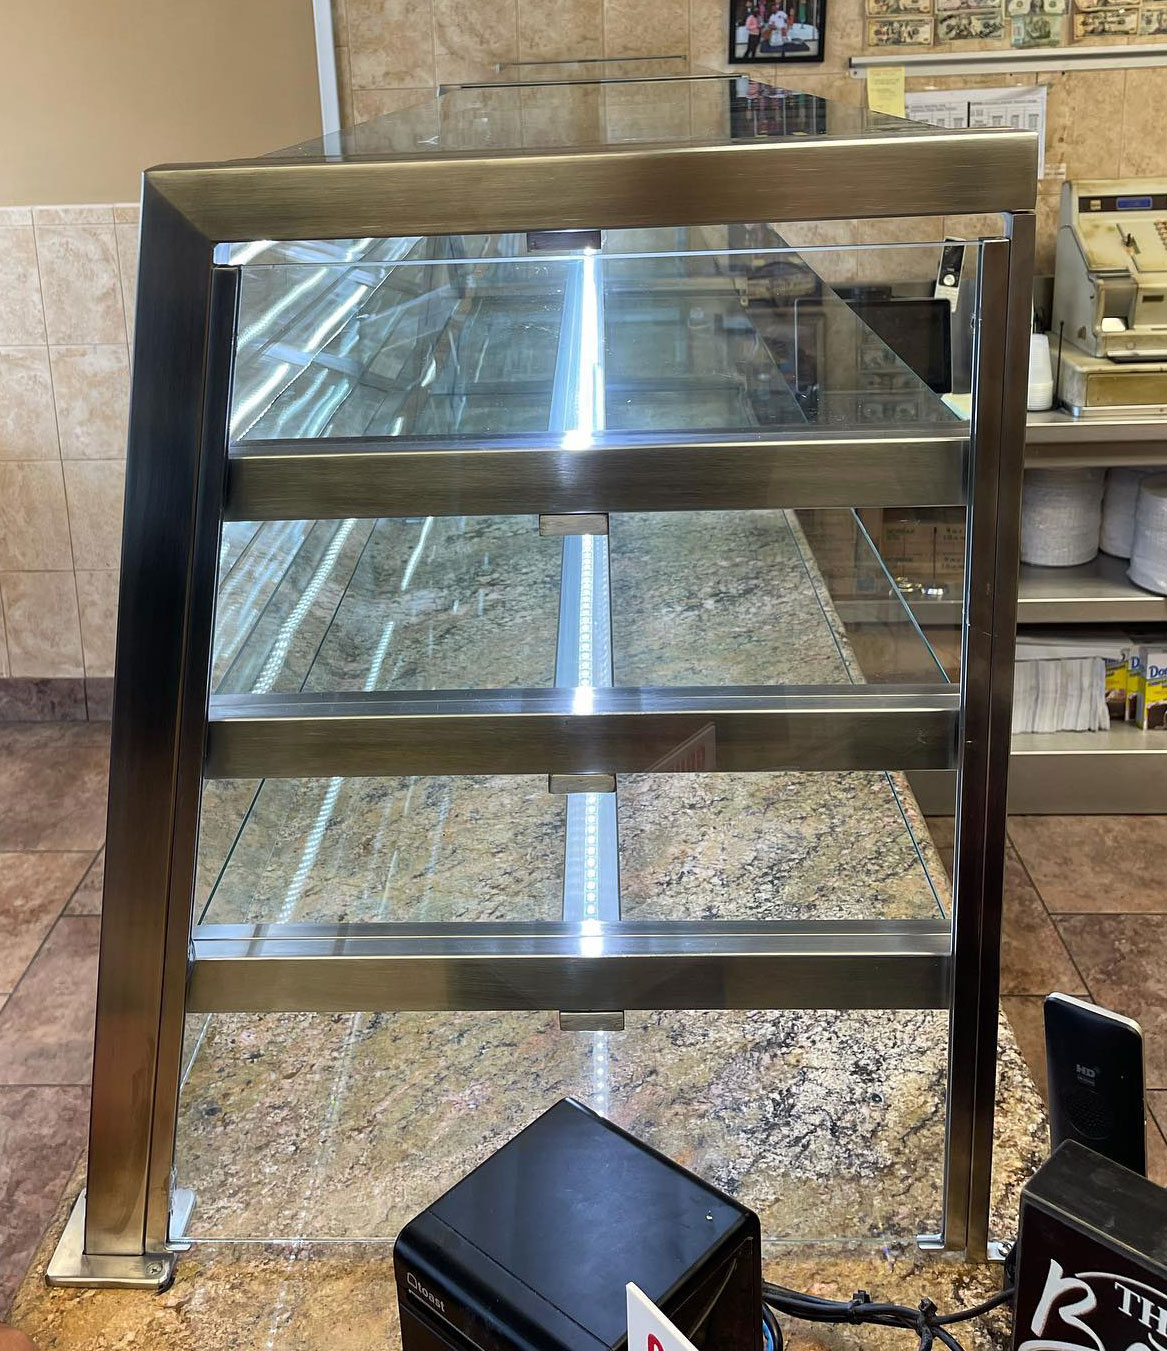 4 Tier Satin Stainless Steel Food Shield with LED Lights | Angela's Pizza - Islip, NY